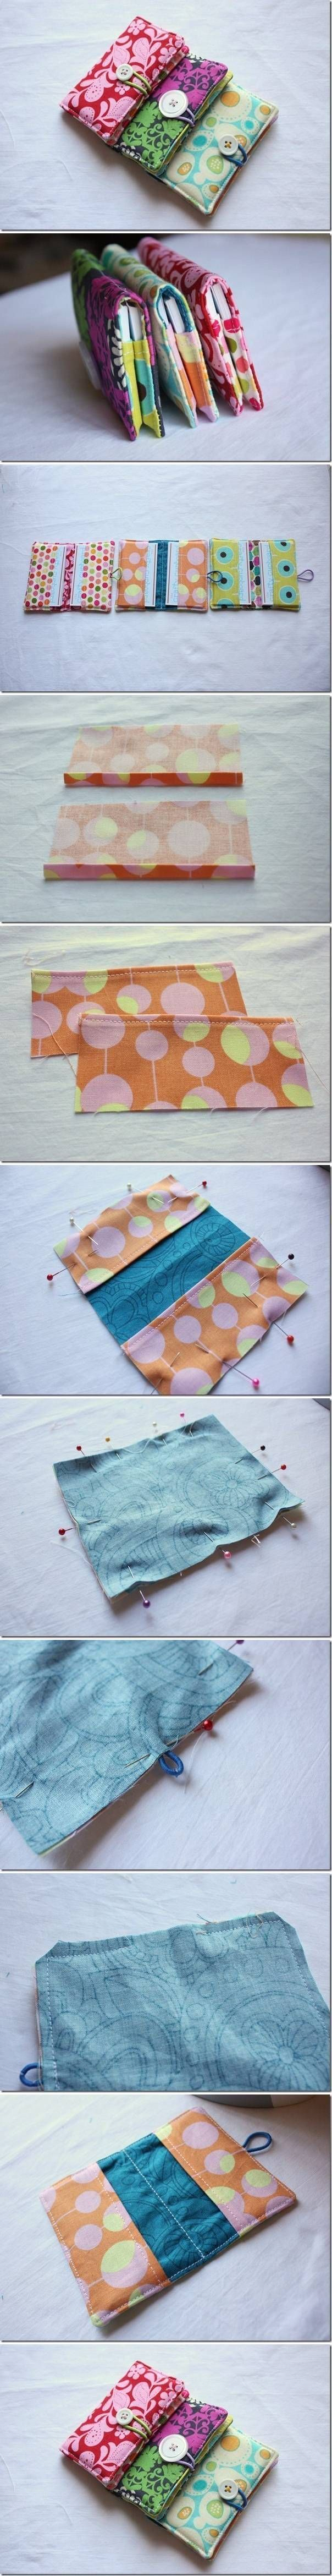 DIY Sew Business Card Holder DIY Projects